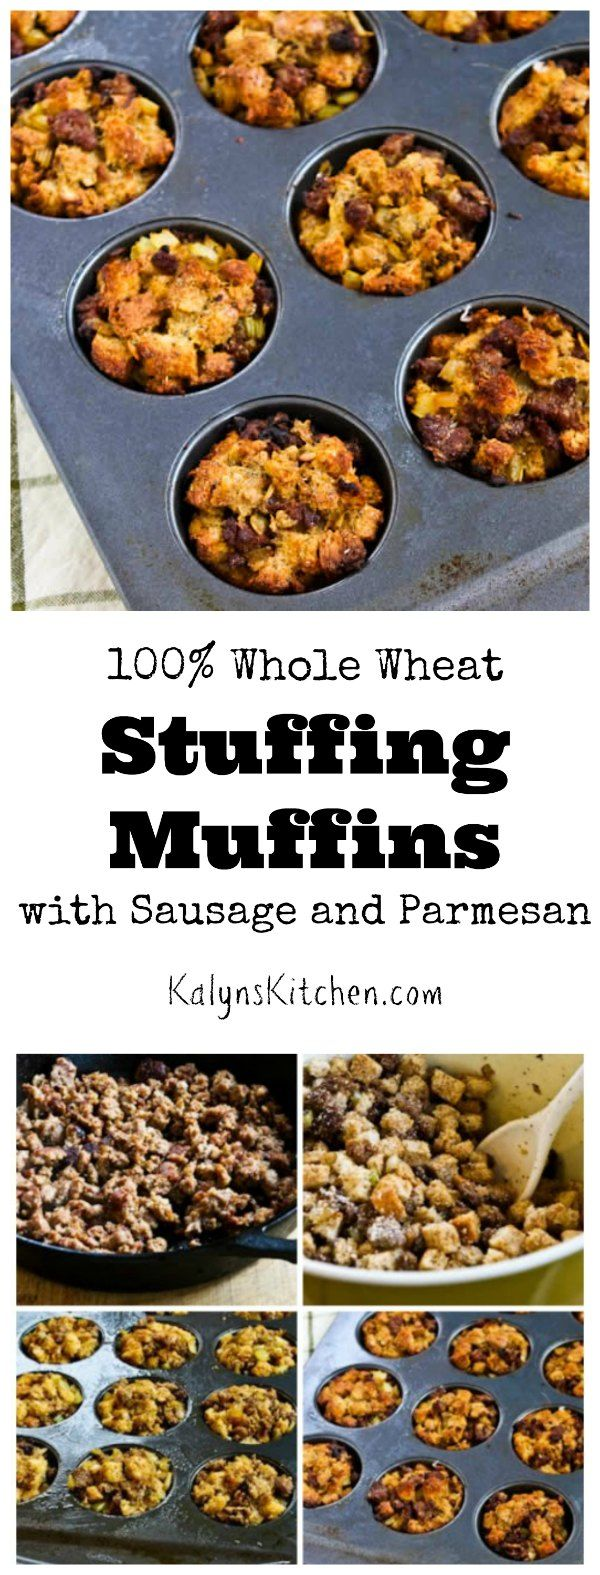 100% Whole Wheat Stuffing Muffins with Sausage and Parmesan | Stuffing ...